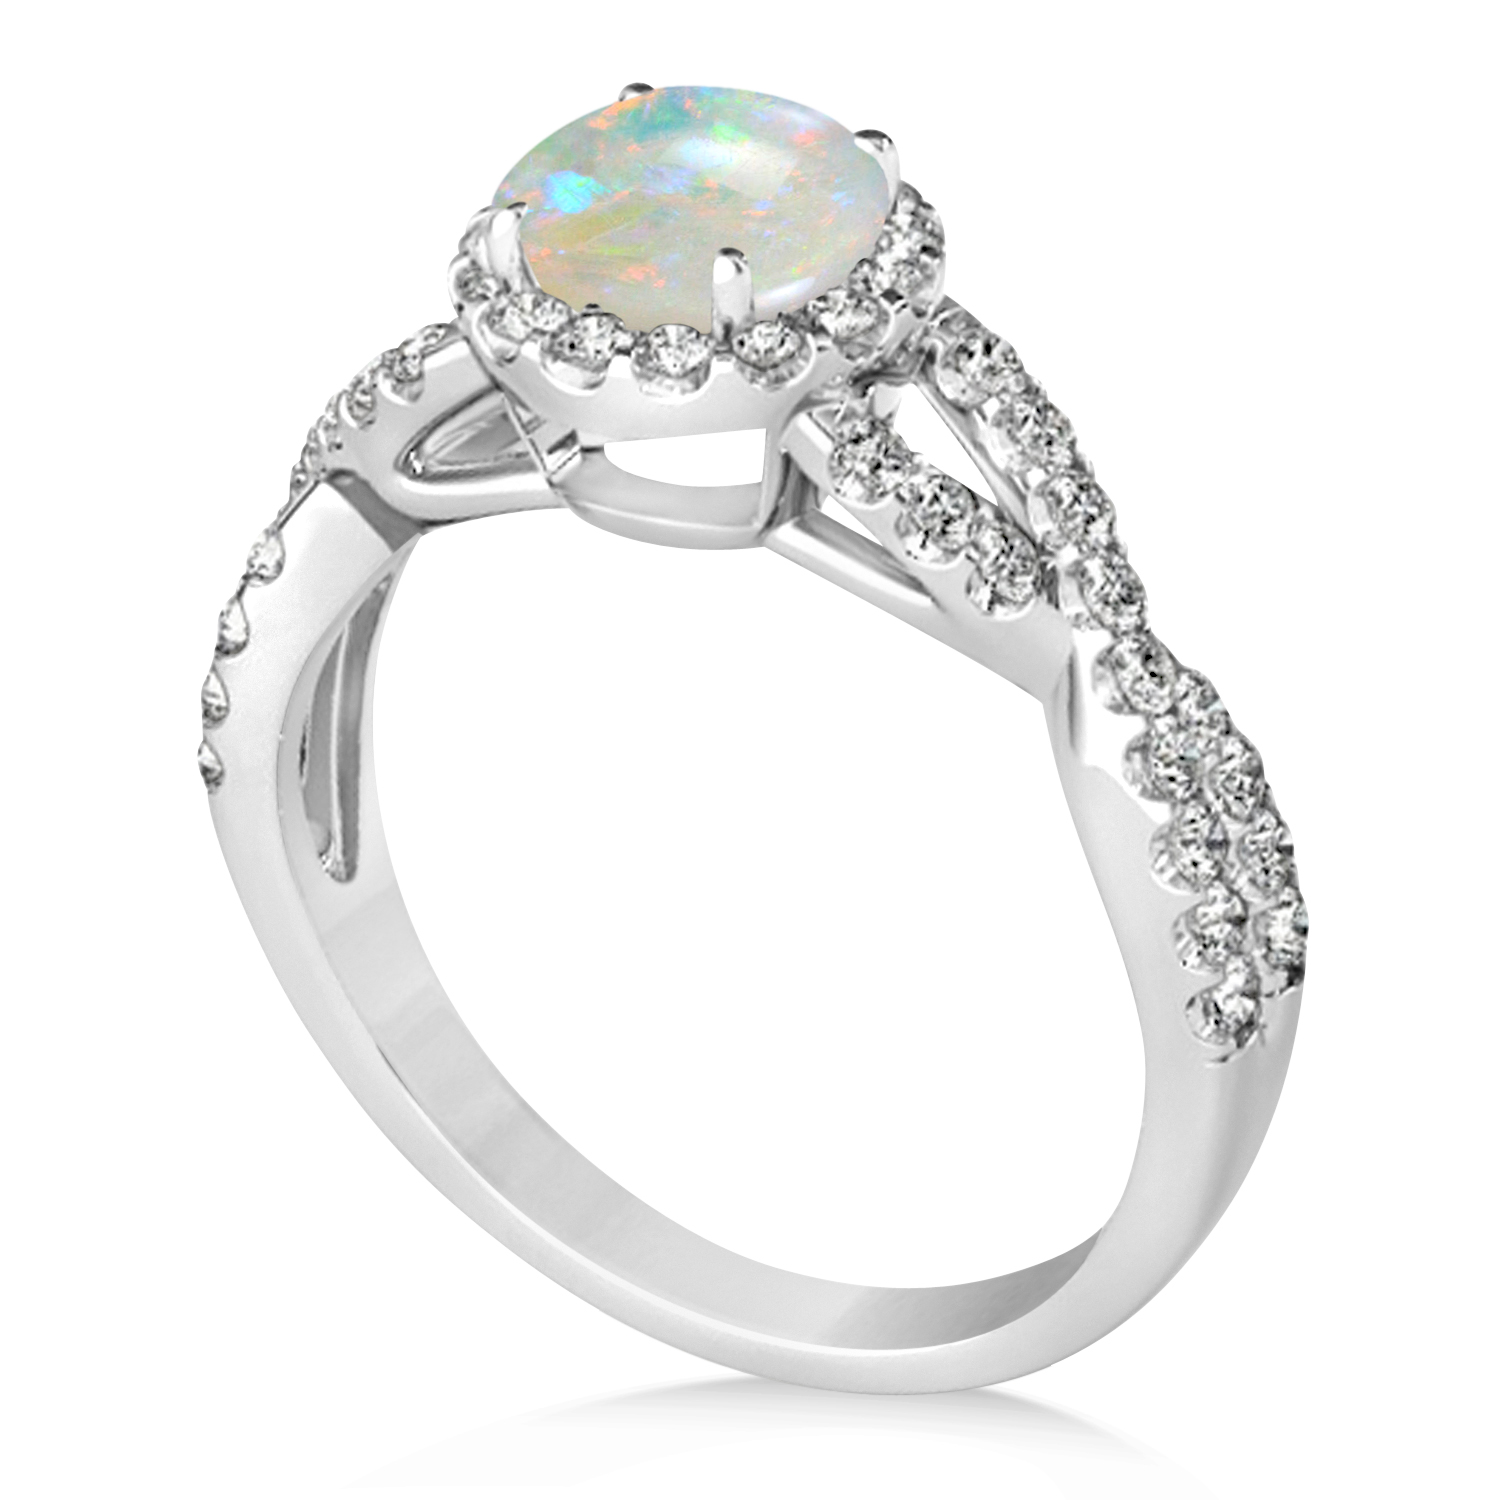 Opal & Diamond Twisted Engagement Ring 14k White Gold 1.07ct